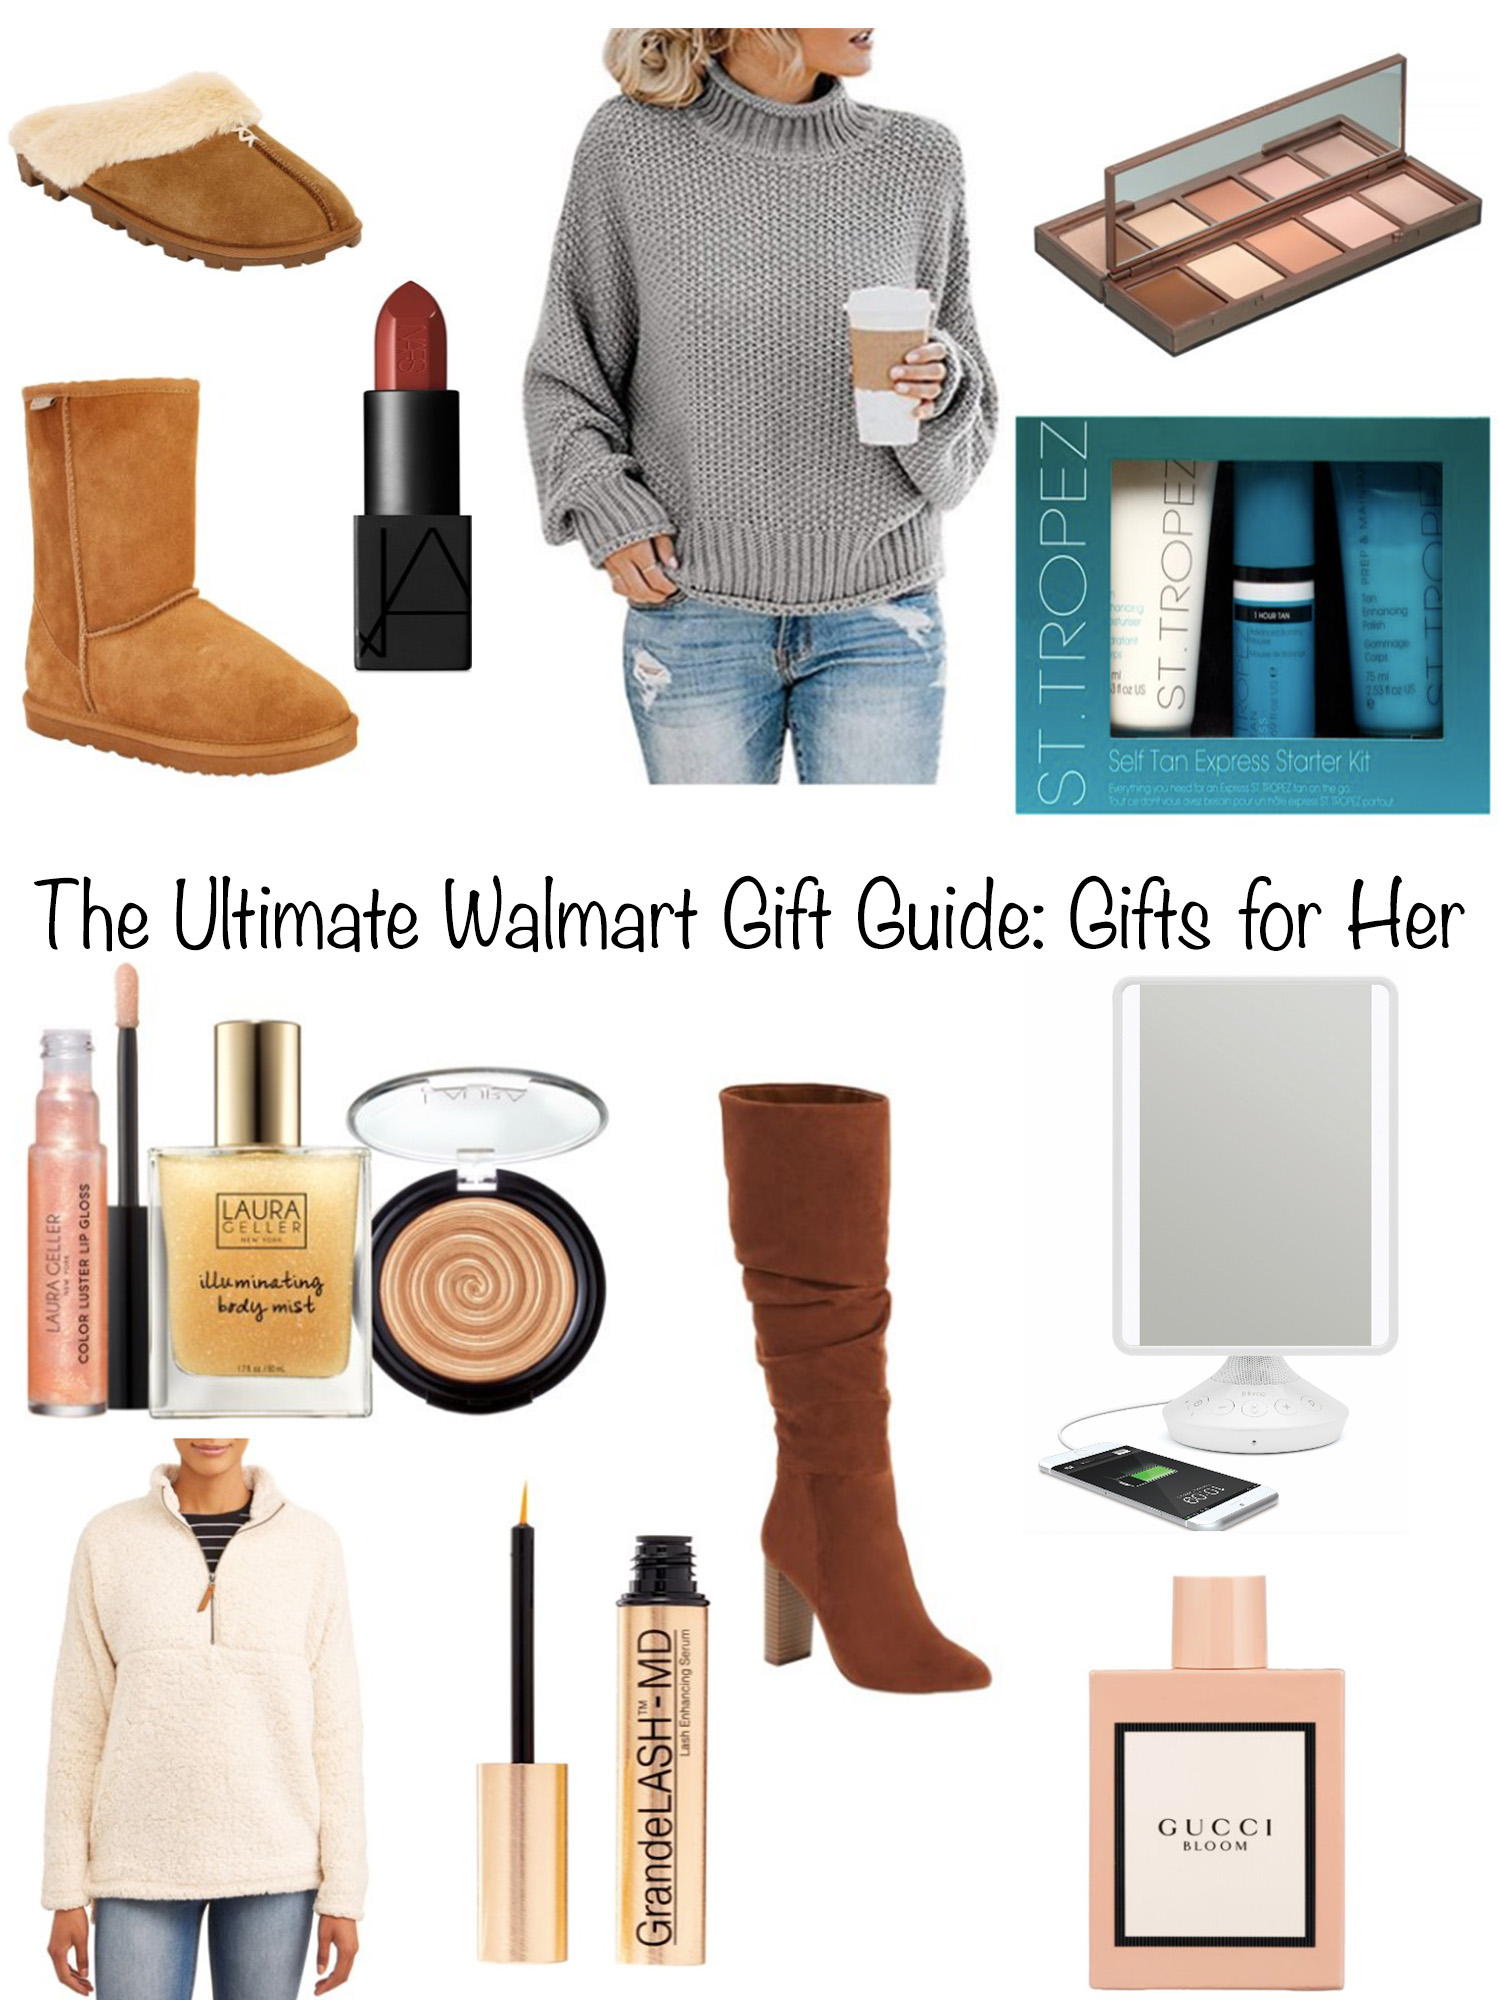 Walmart Gifts for Her